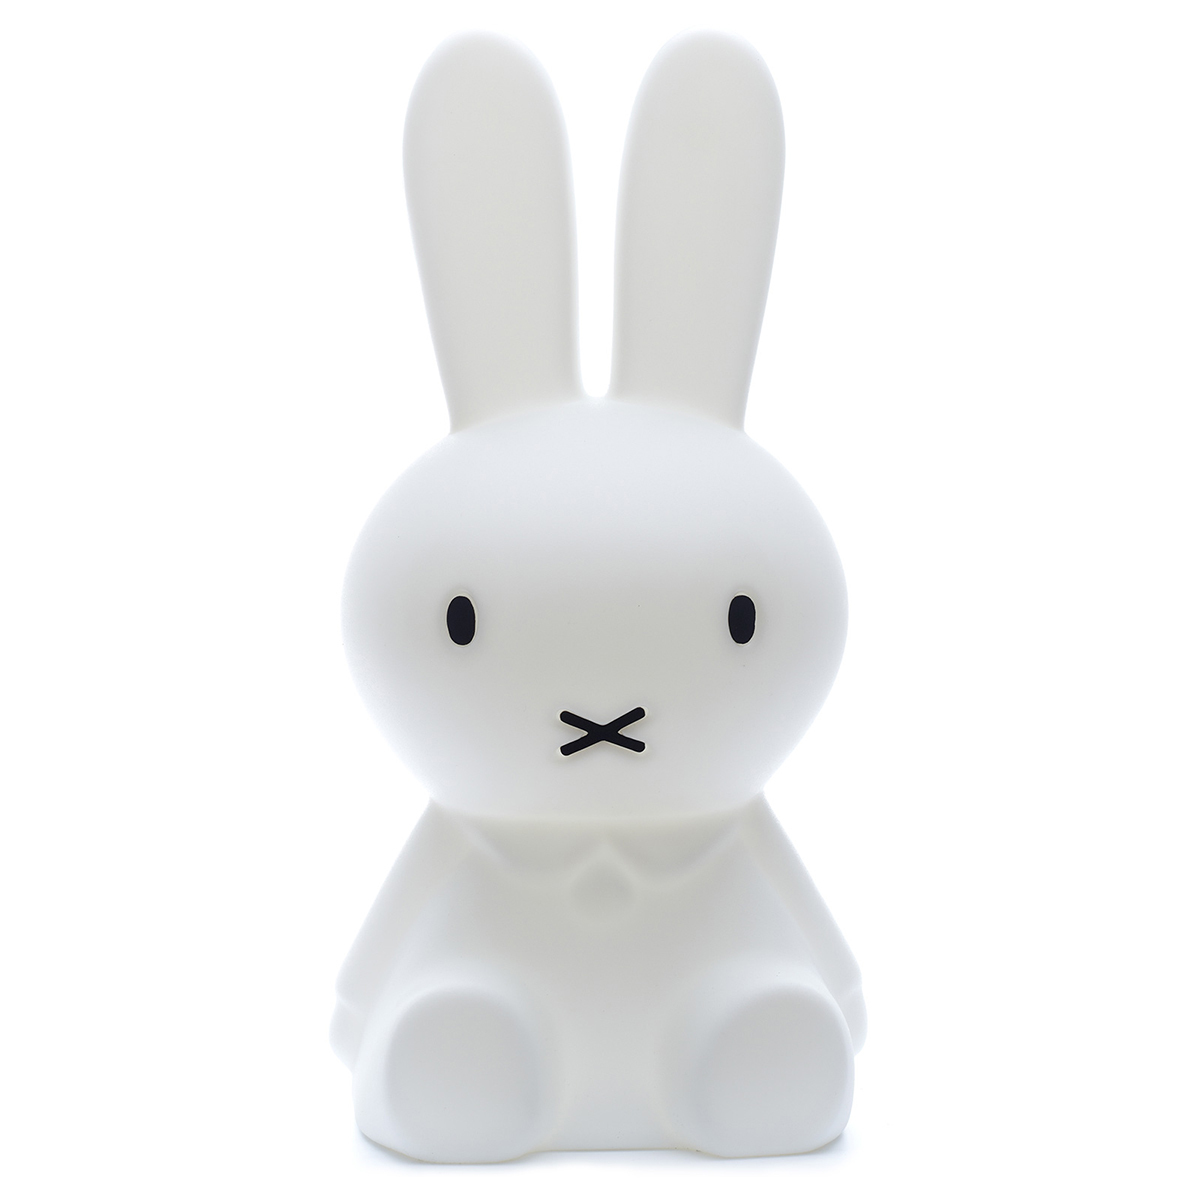 Veilleuse Veilleuse Lampe Miffy First Light - Blanc Veilleuse Lampe Miffy First Light - Blanc